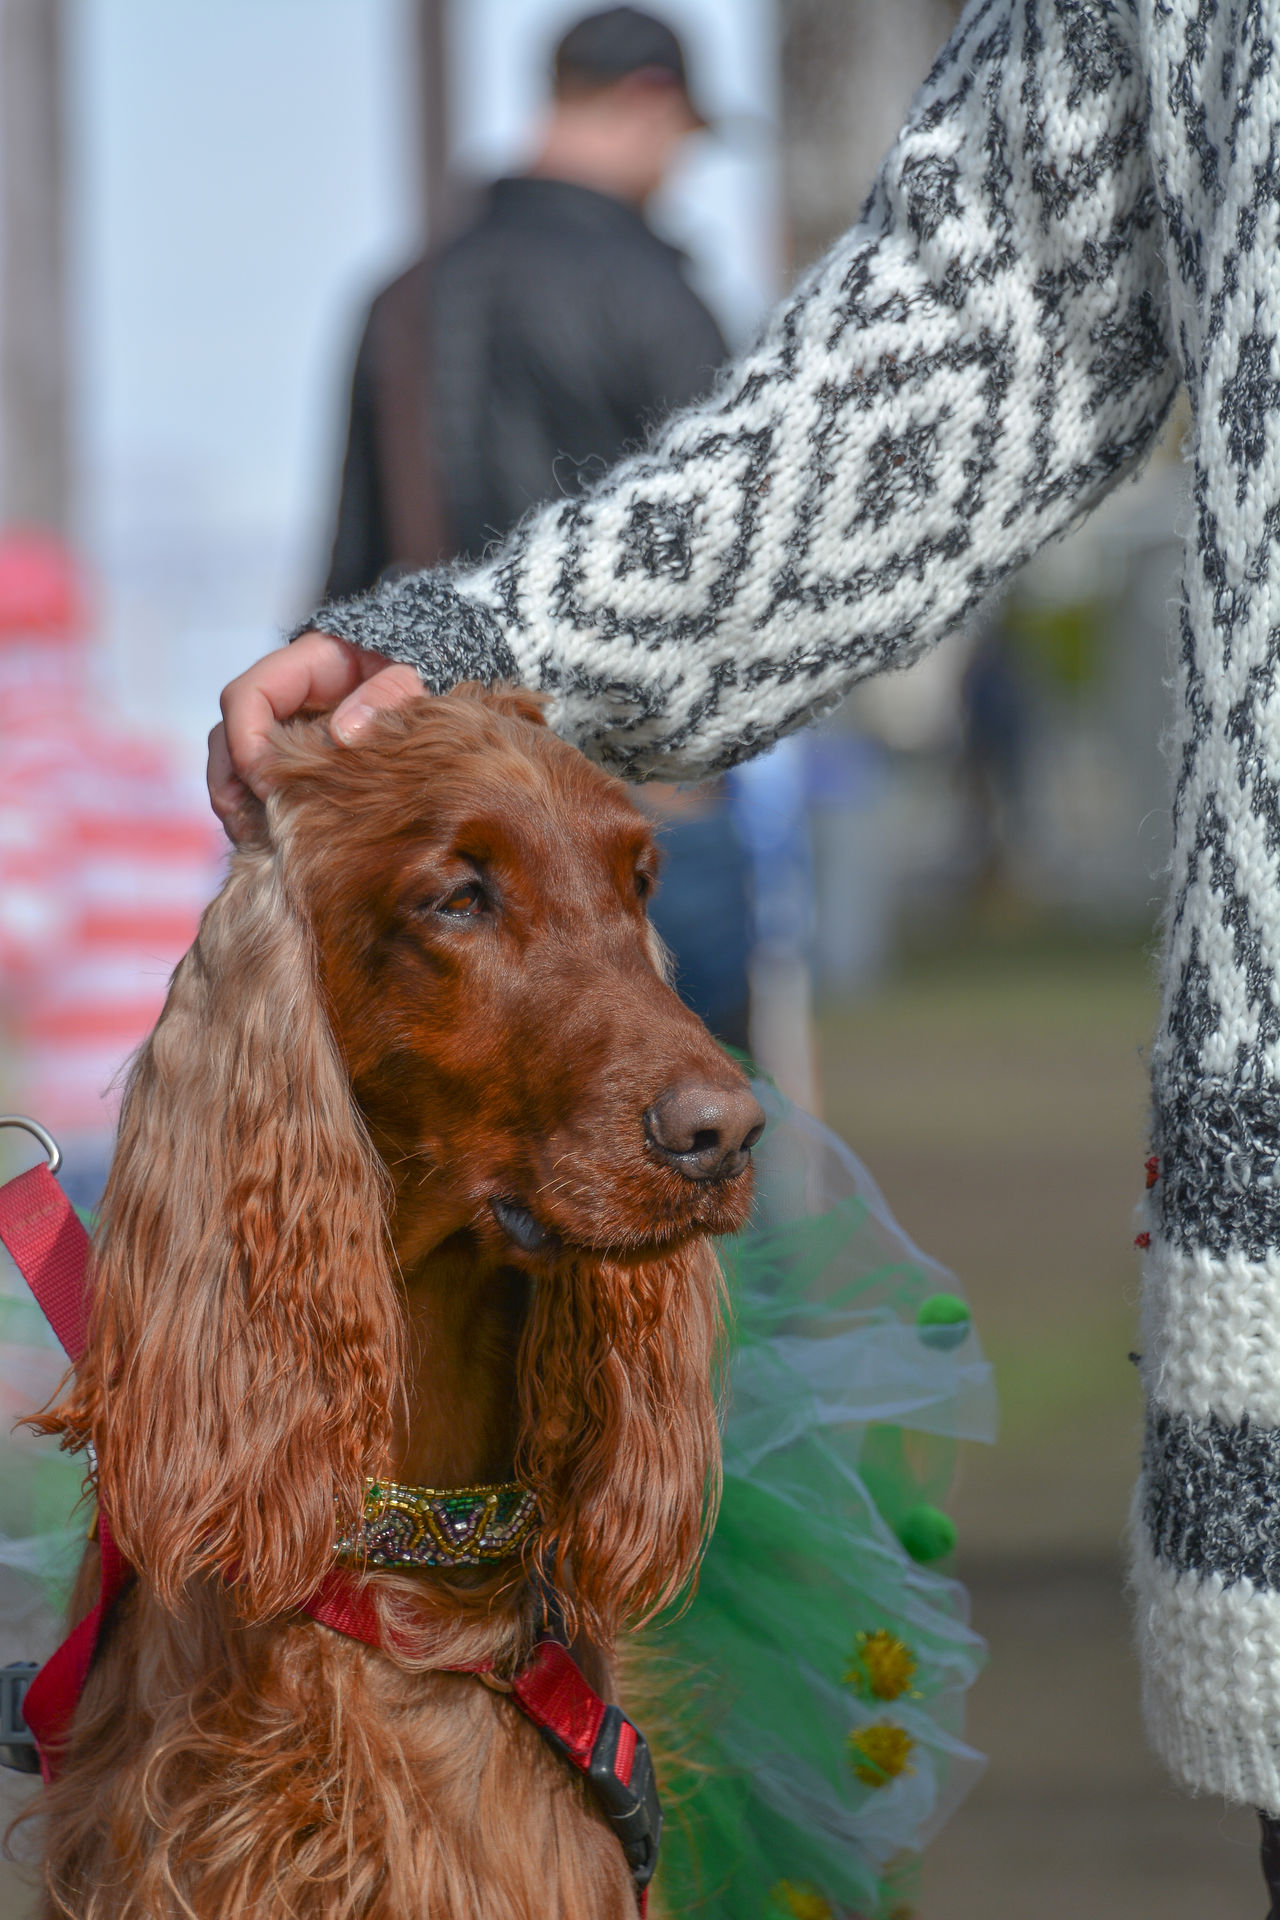 Adult Animal Animal Body Part Animal Themes Close-up Day Dog Domestic Animals Irish Setter Mammal One Animal One Man Only One Person Outdoors People Pets St Patrick's Day